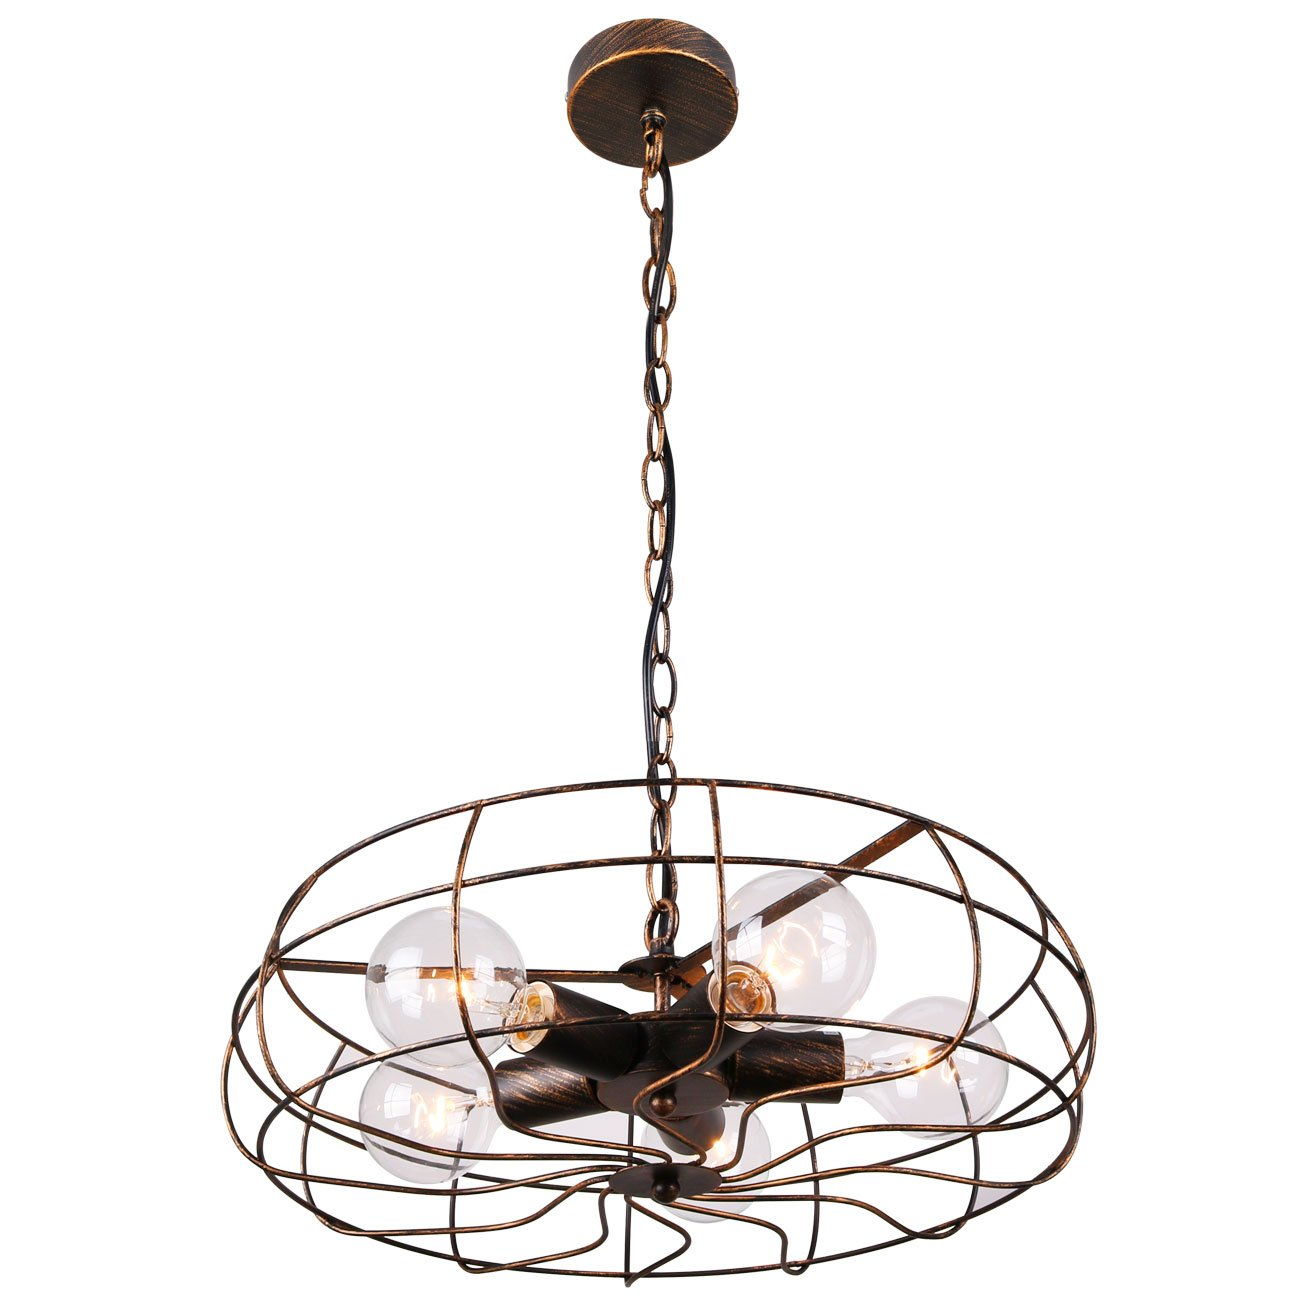 Unitary Brand Vintage Barn Copper Metal Hanging Ceiling Chandelier Max. 200W With 5 Lights Painted Finish